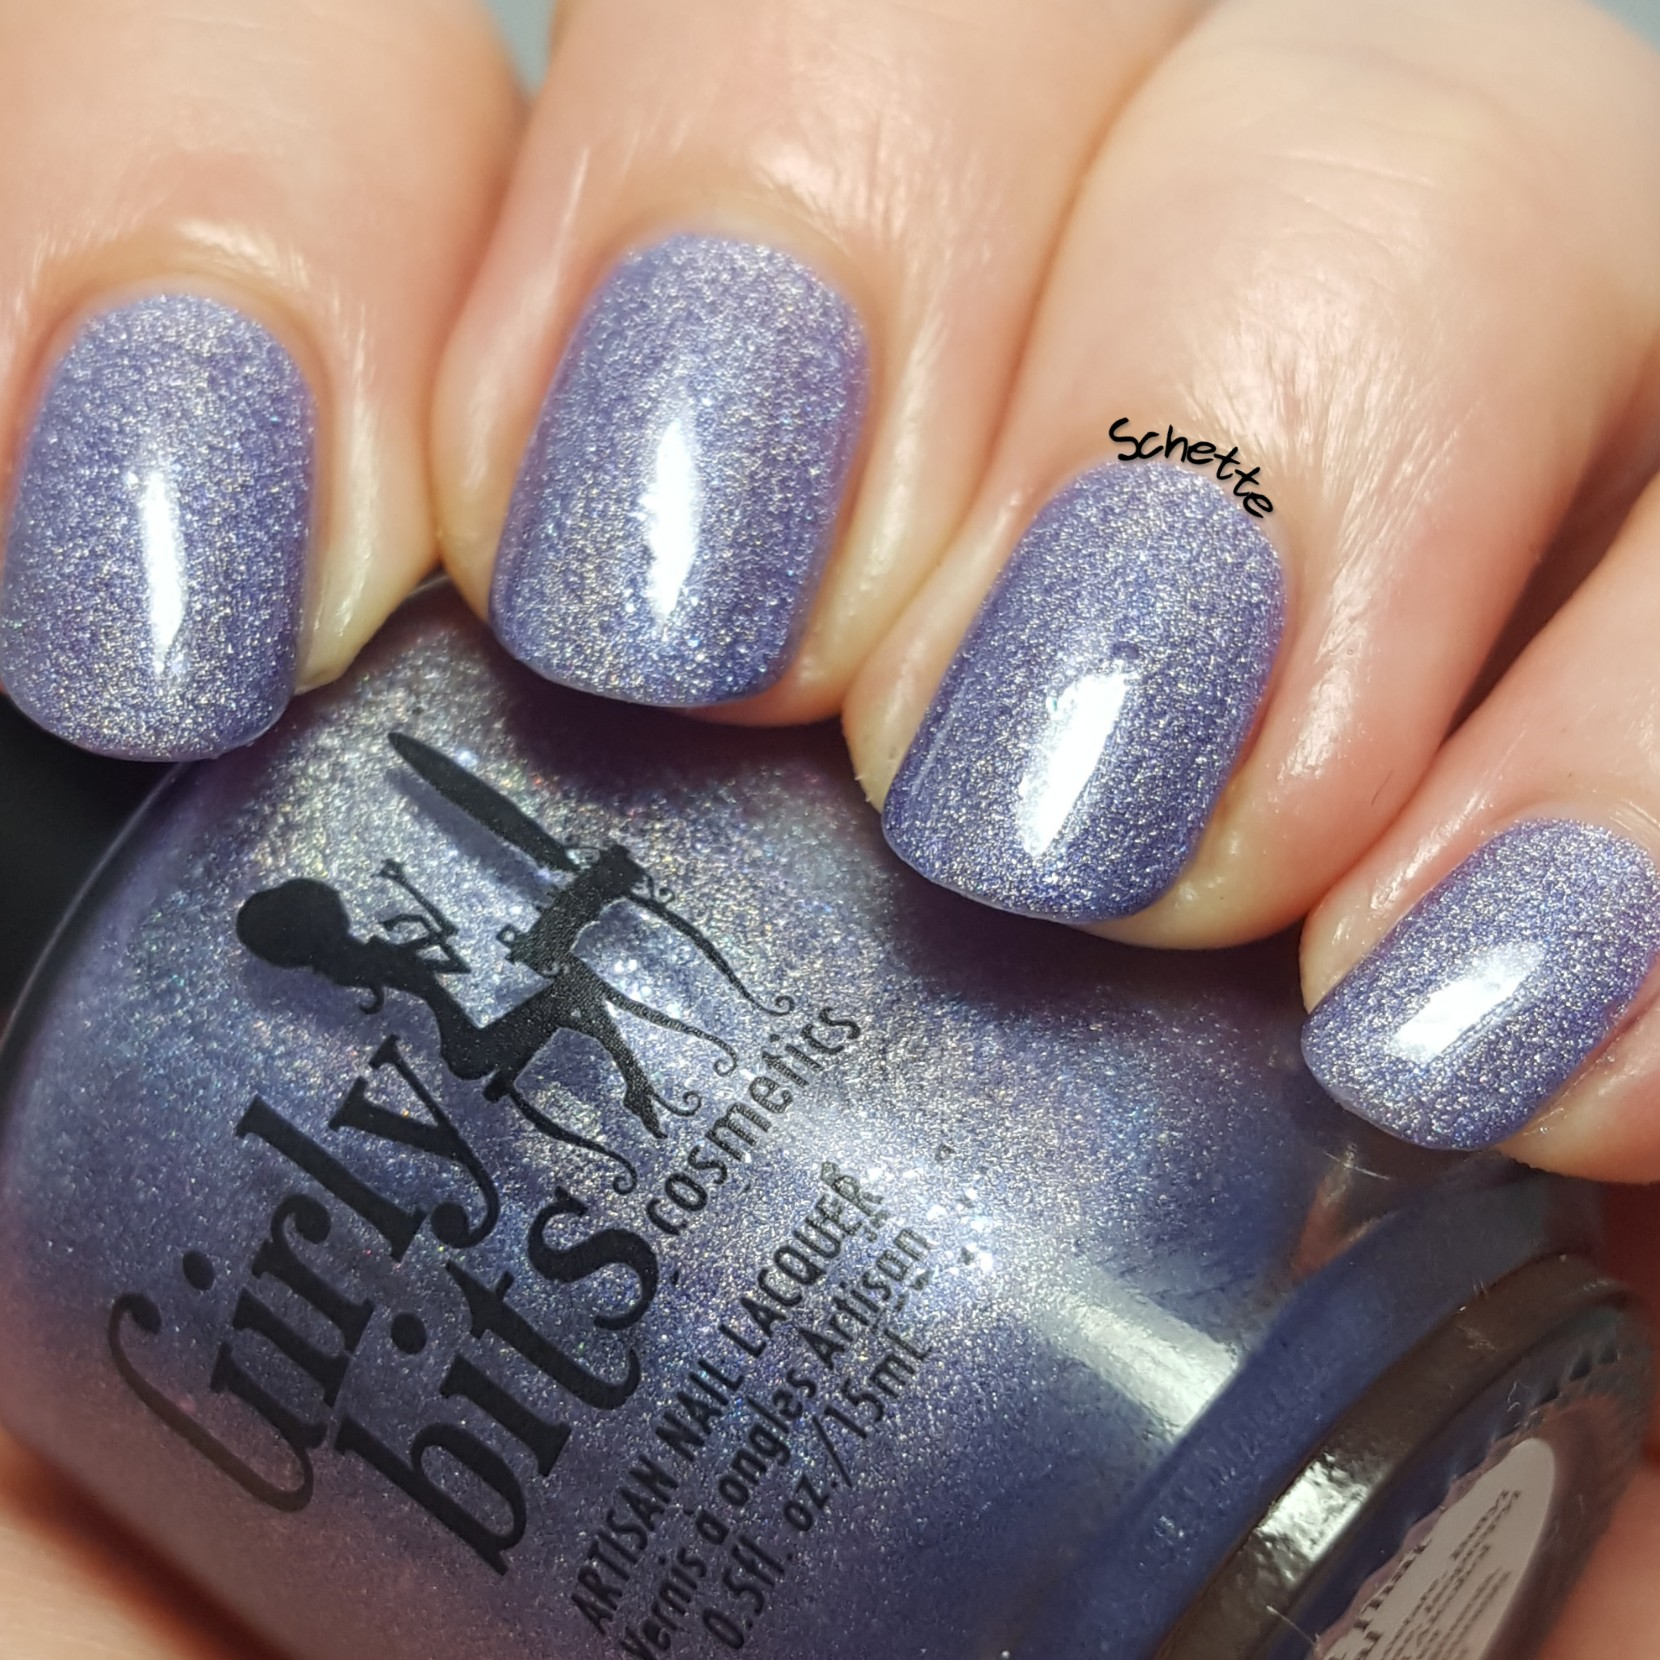 Girly Bits - Well isnt that special